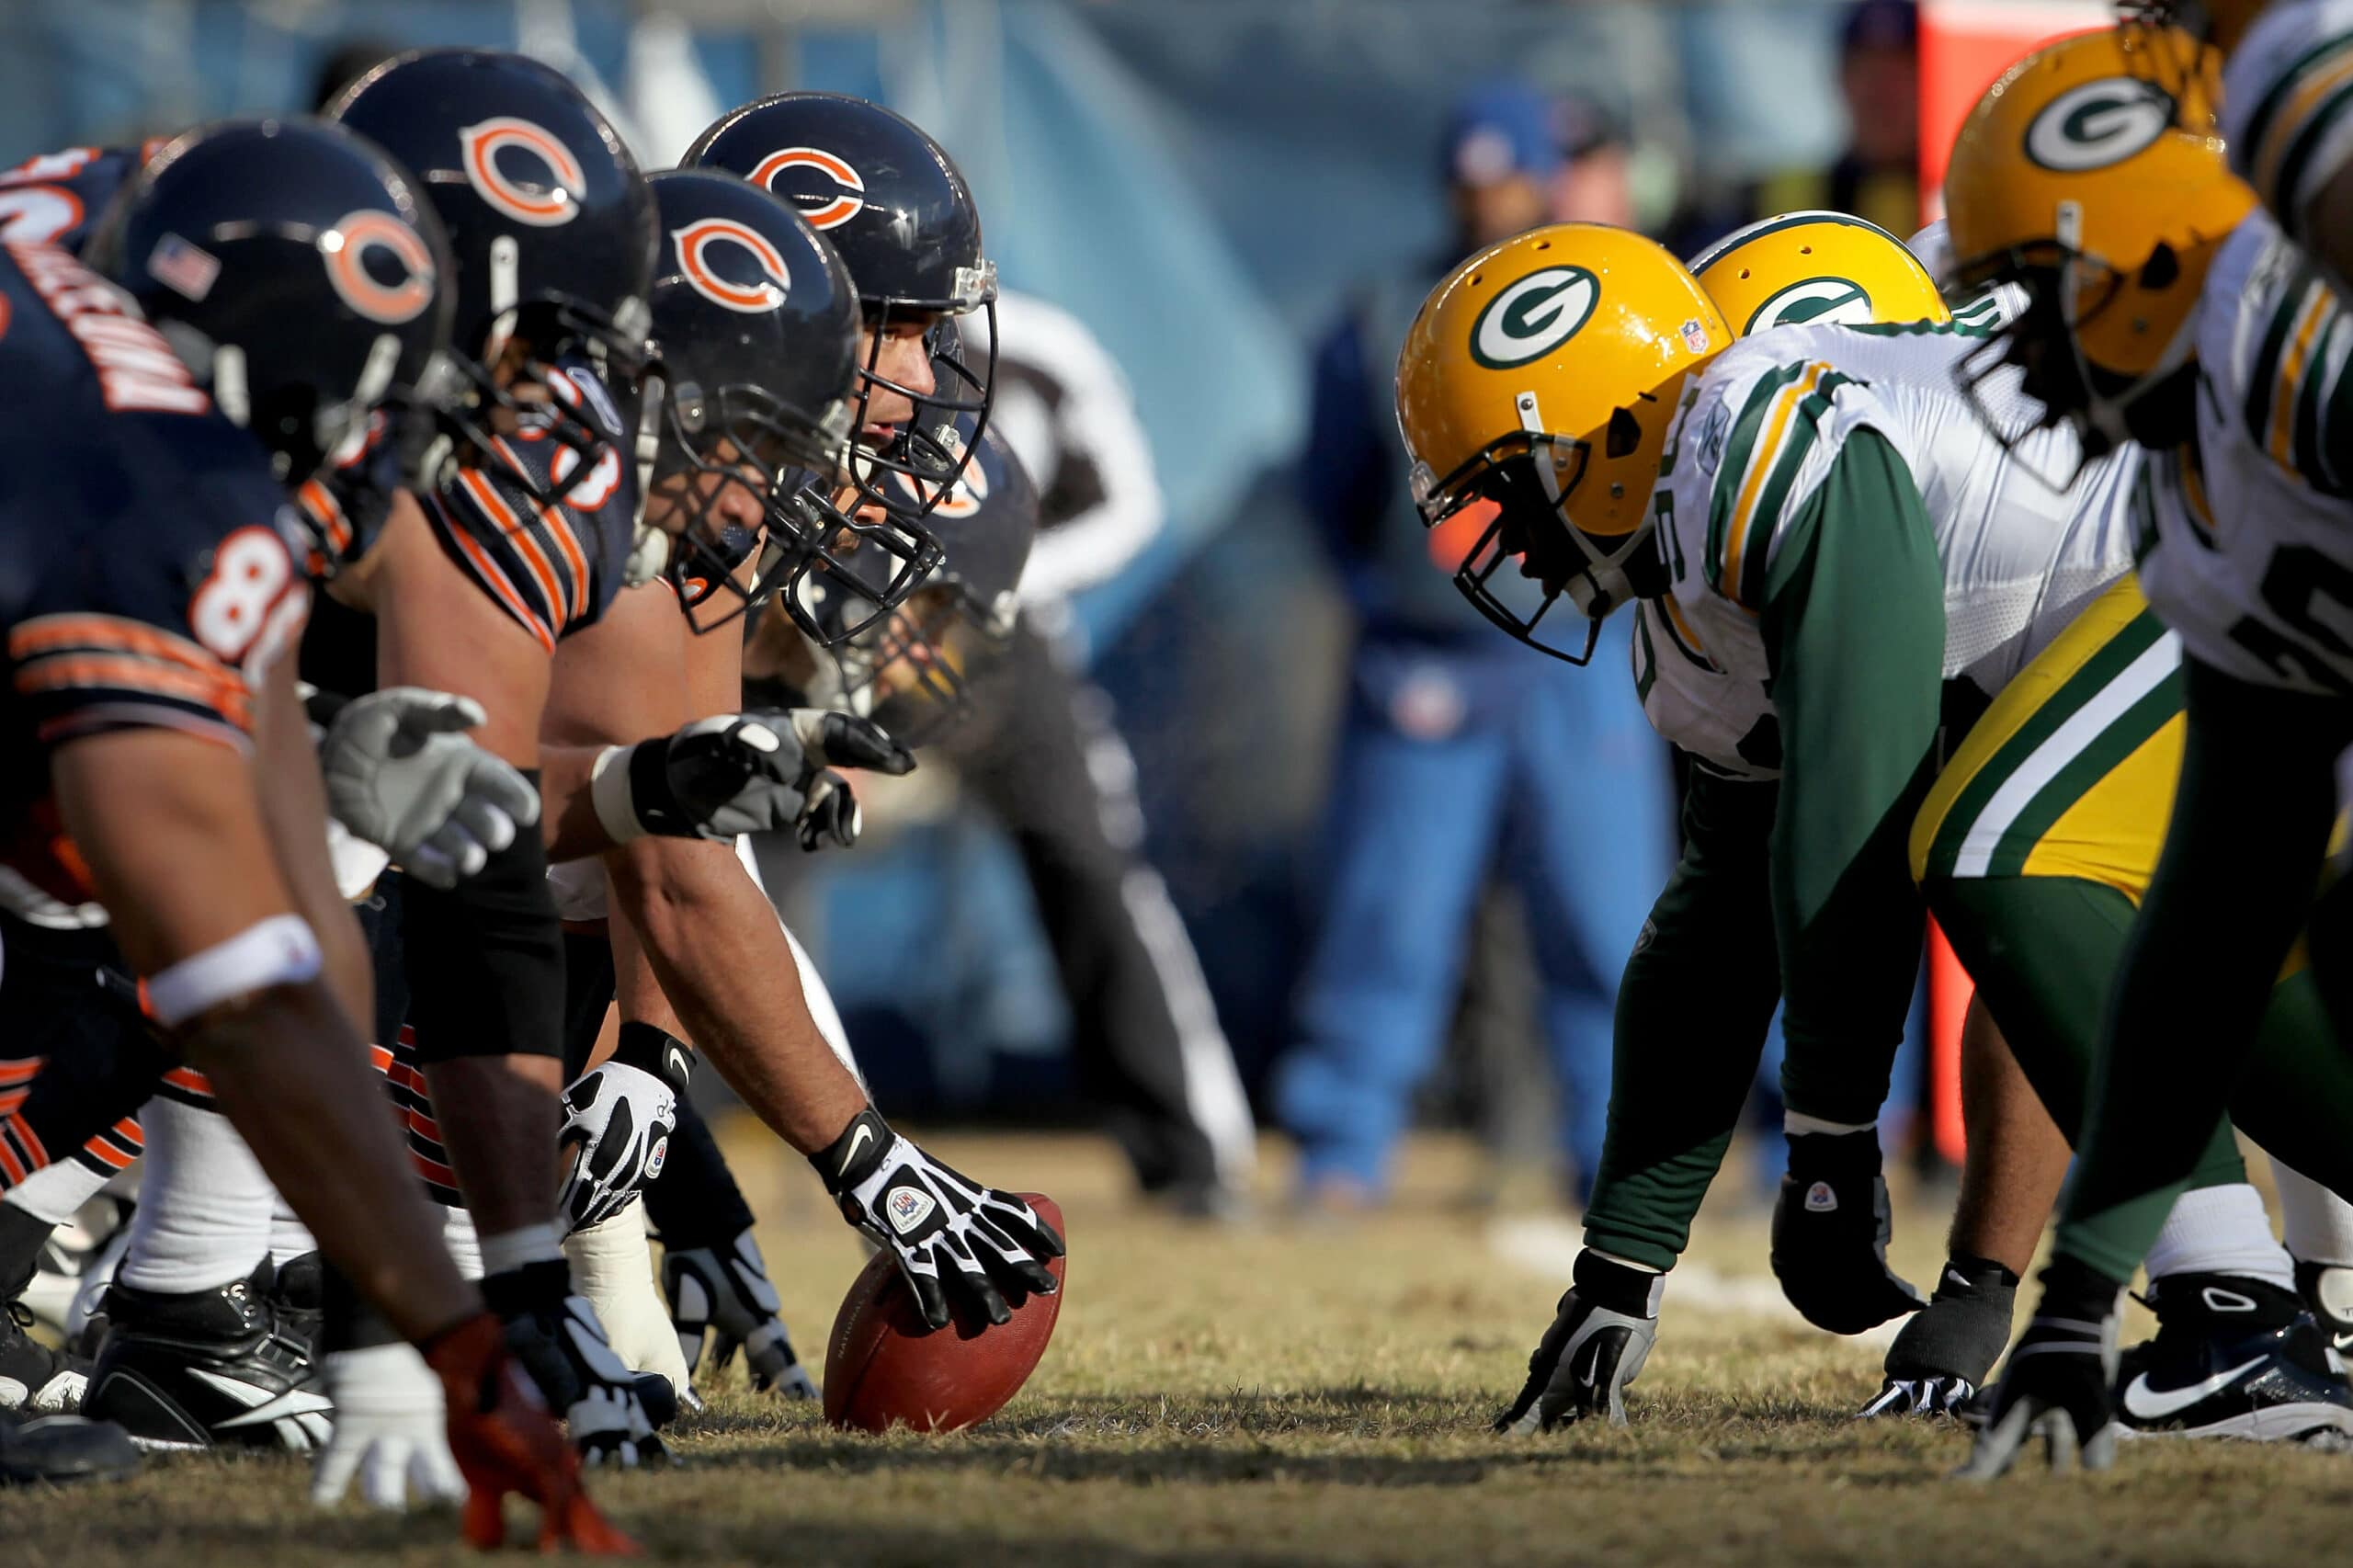 Bears vs packers betting tips political betting sites intradermal spindle